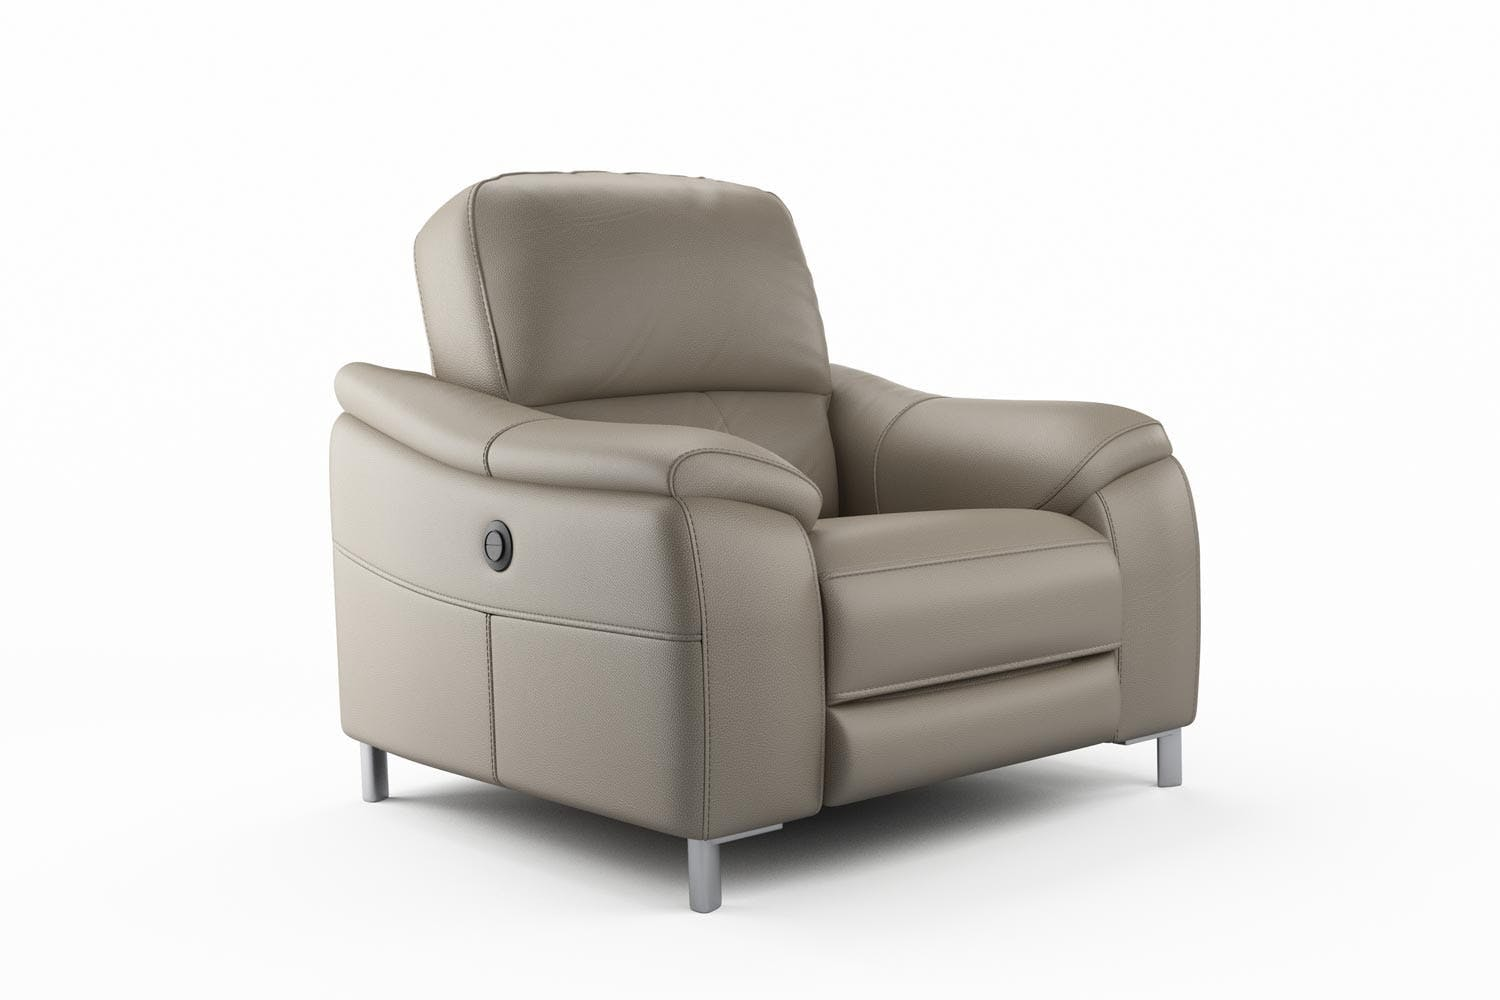 Yvezza Electric Recliner Chair | 5 Colour Options